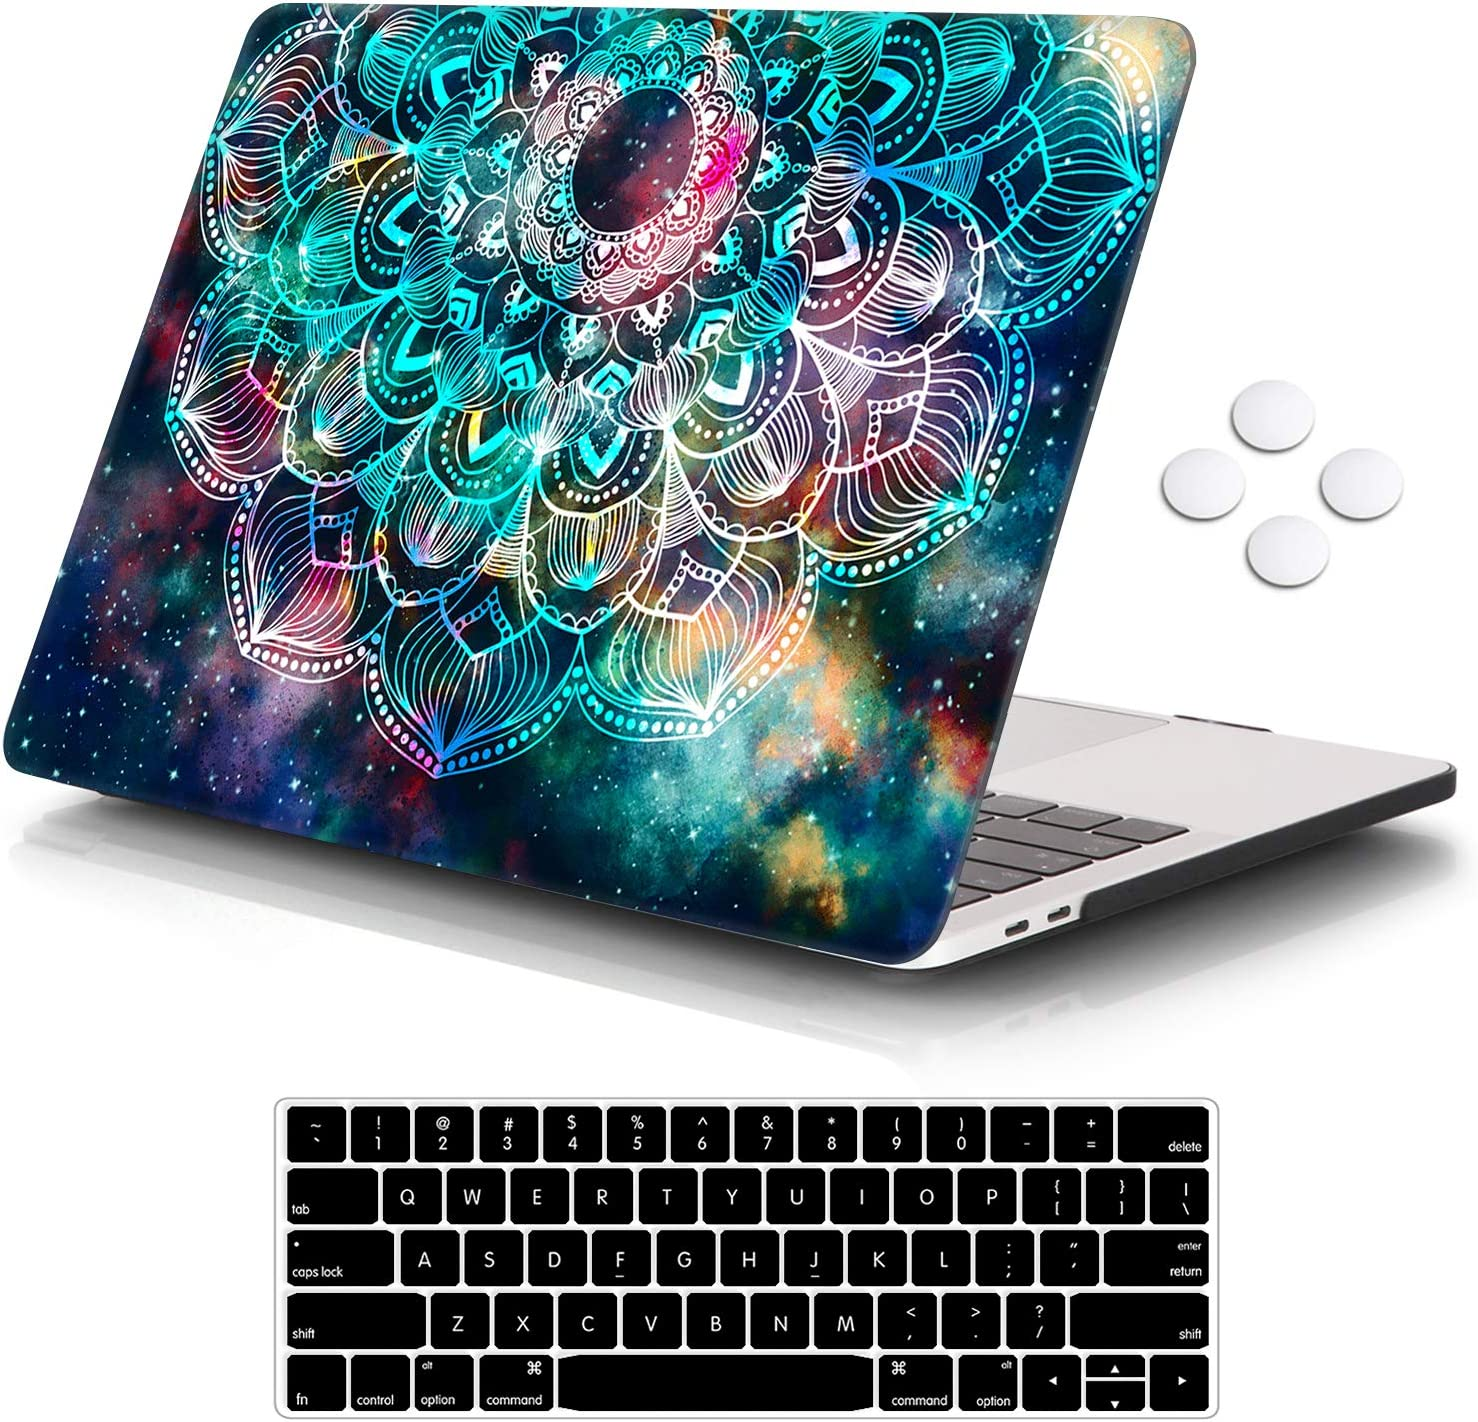 "iCasso MacBook Pro 13 inch Case 2019 2018 2017 2016 Release A2159/A1989/A1706/A1708, Plastic Hard Shell Case with 5 Rows Keyboard Cover Compatible with Newest MacBook Pro 13"" - Nebula Mandala"